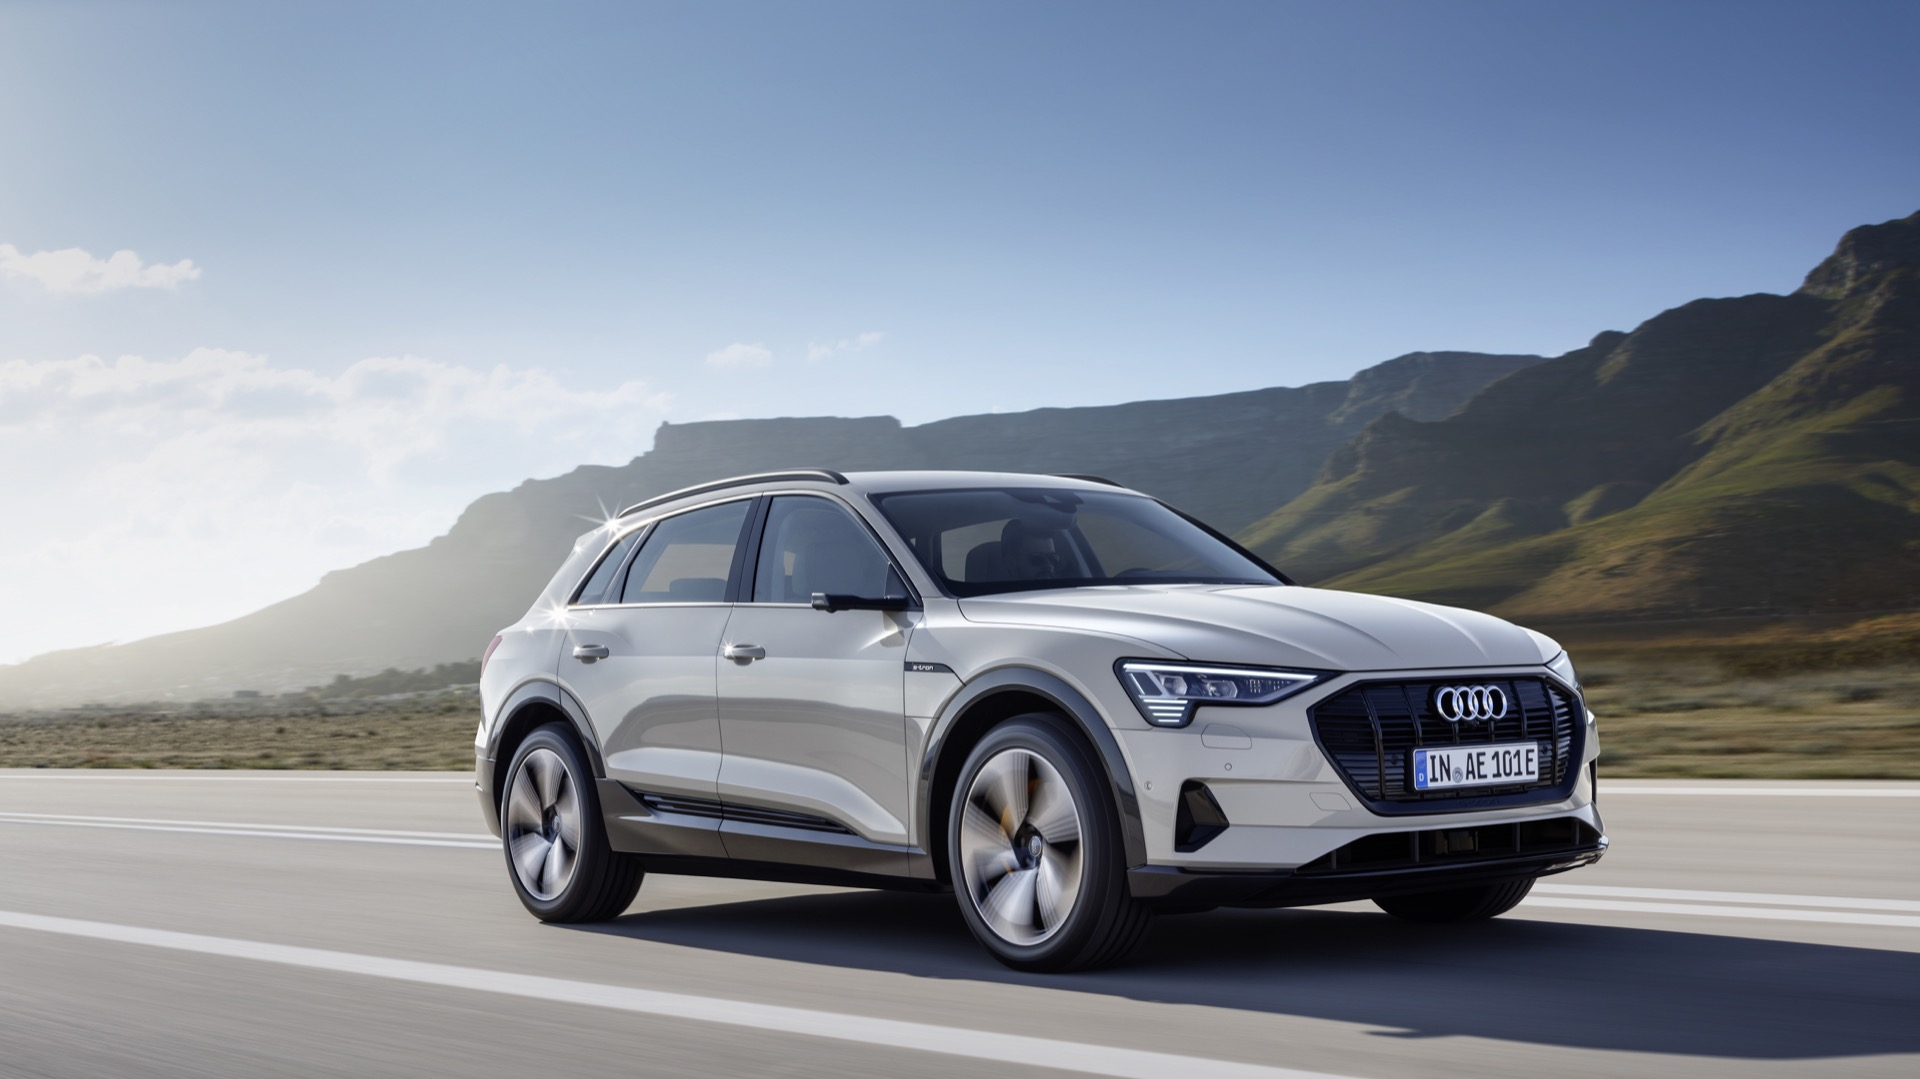 2019 Audi E Tron Epa Range Revealed Nothing To Brag About But Aiming For The Real World